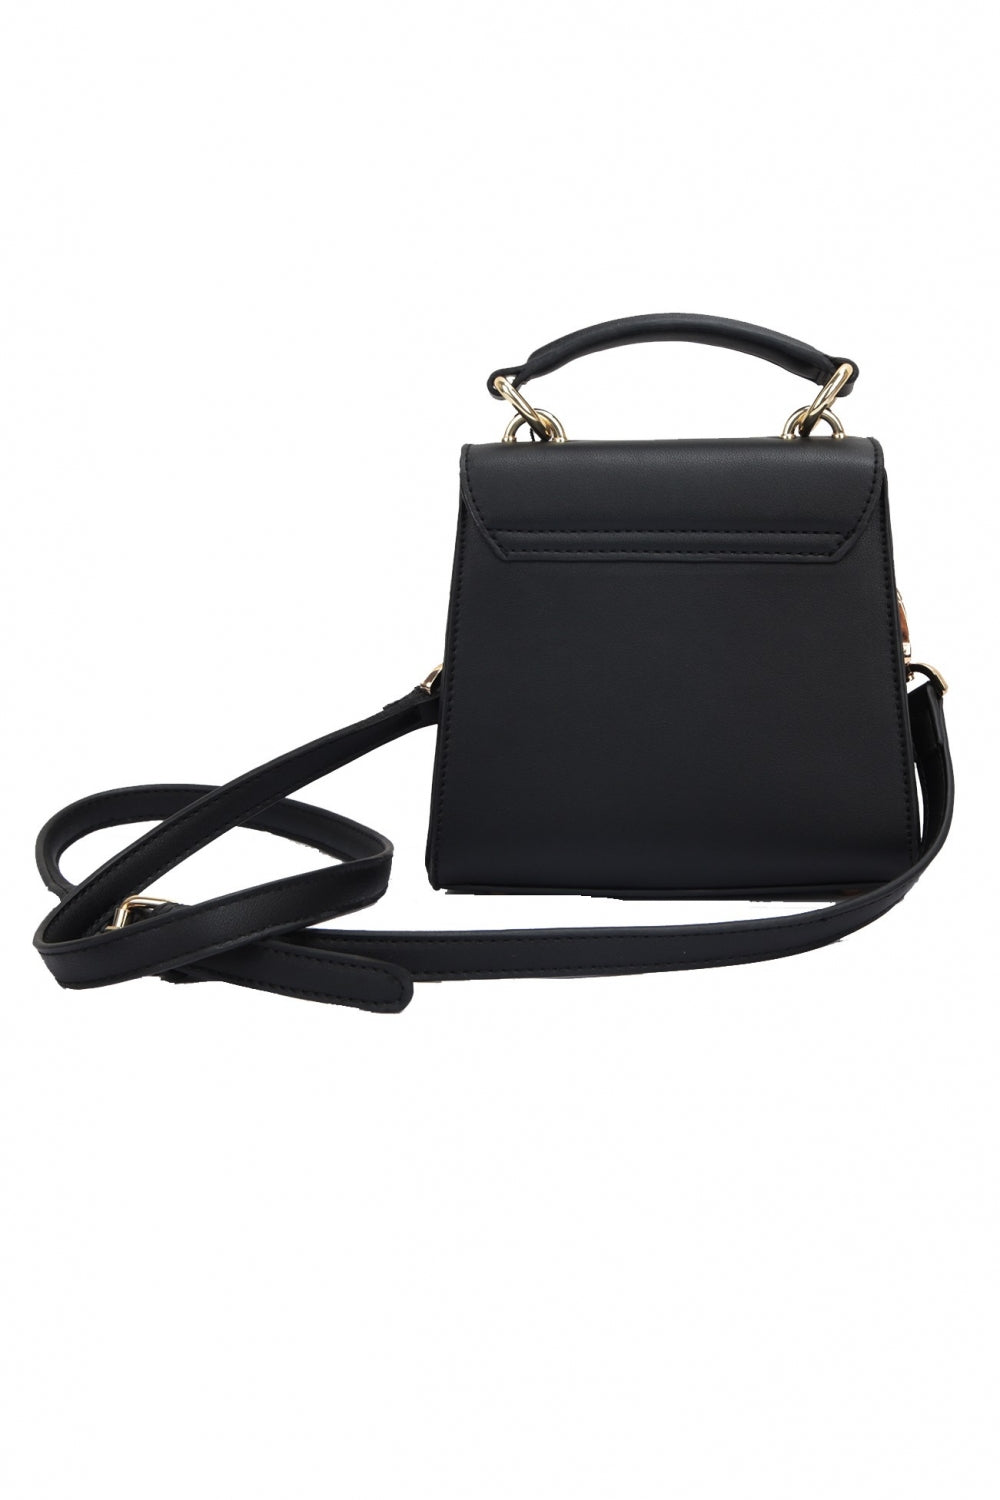 7551 Brooke Mini Handbag